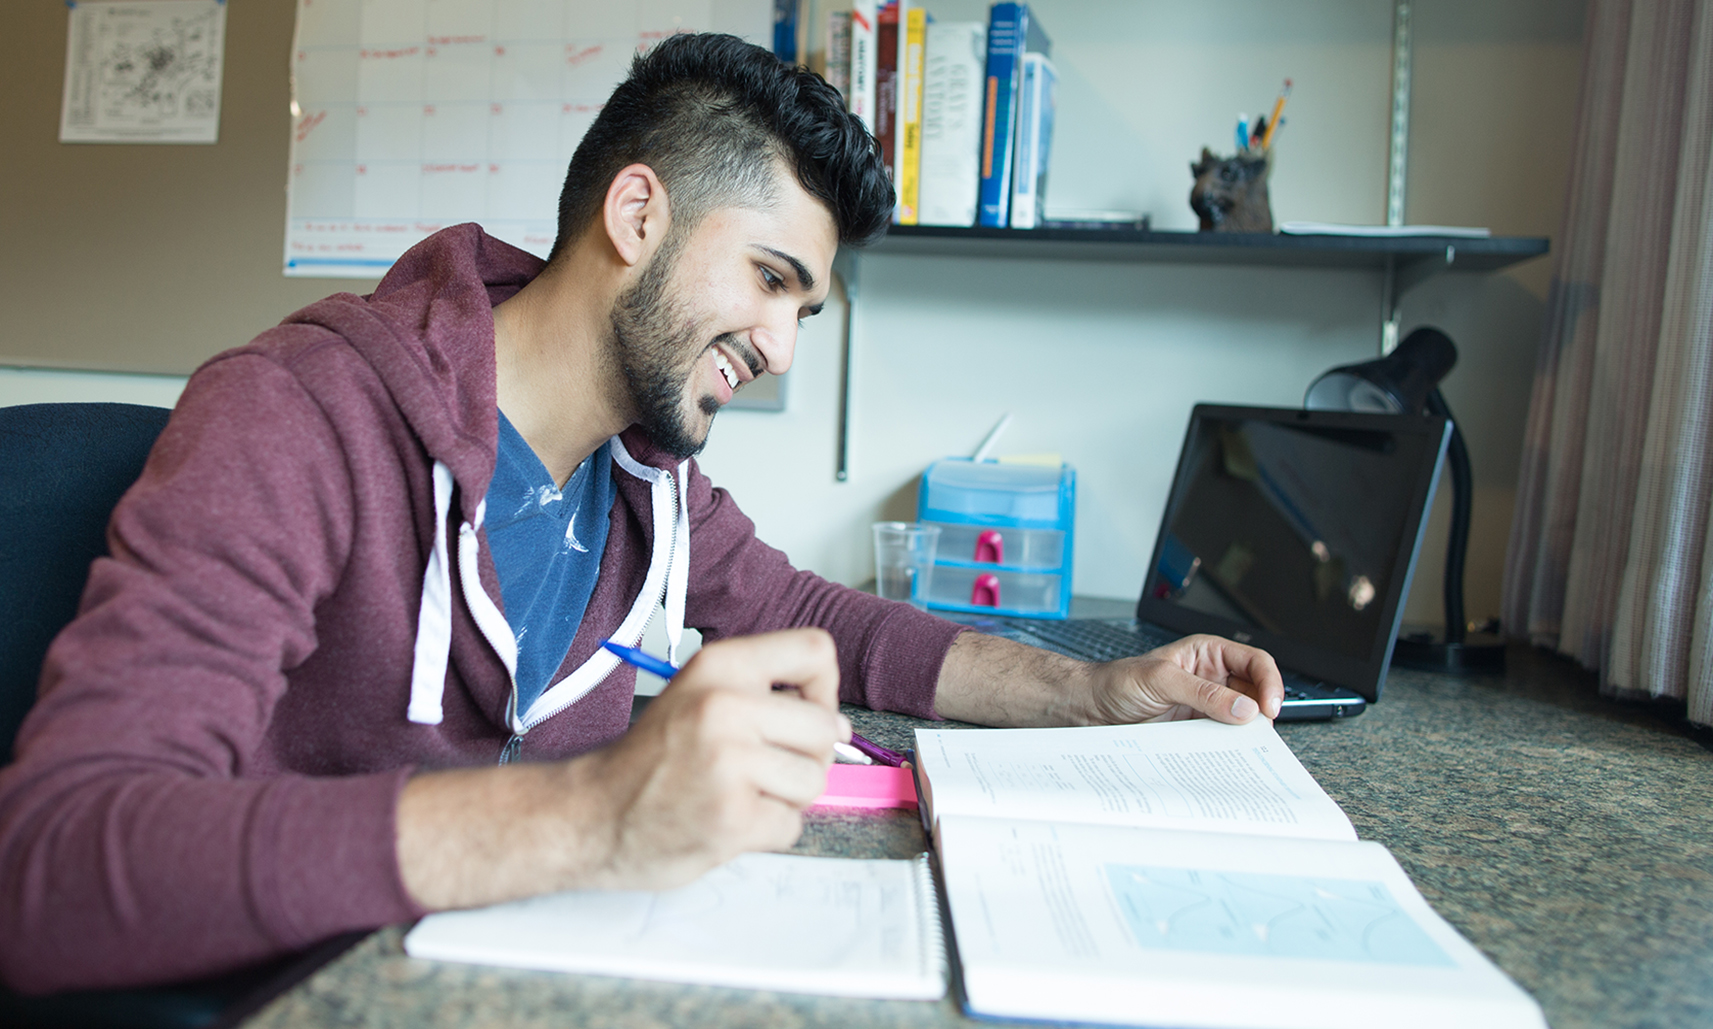 A smiling student is pictured in his residence room sitting at a desk working from a textbook. A black laptop computer and light are pictured in the background.